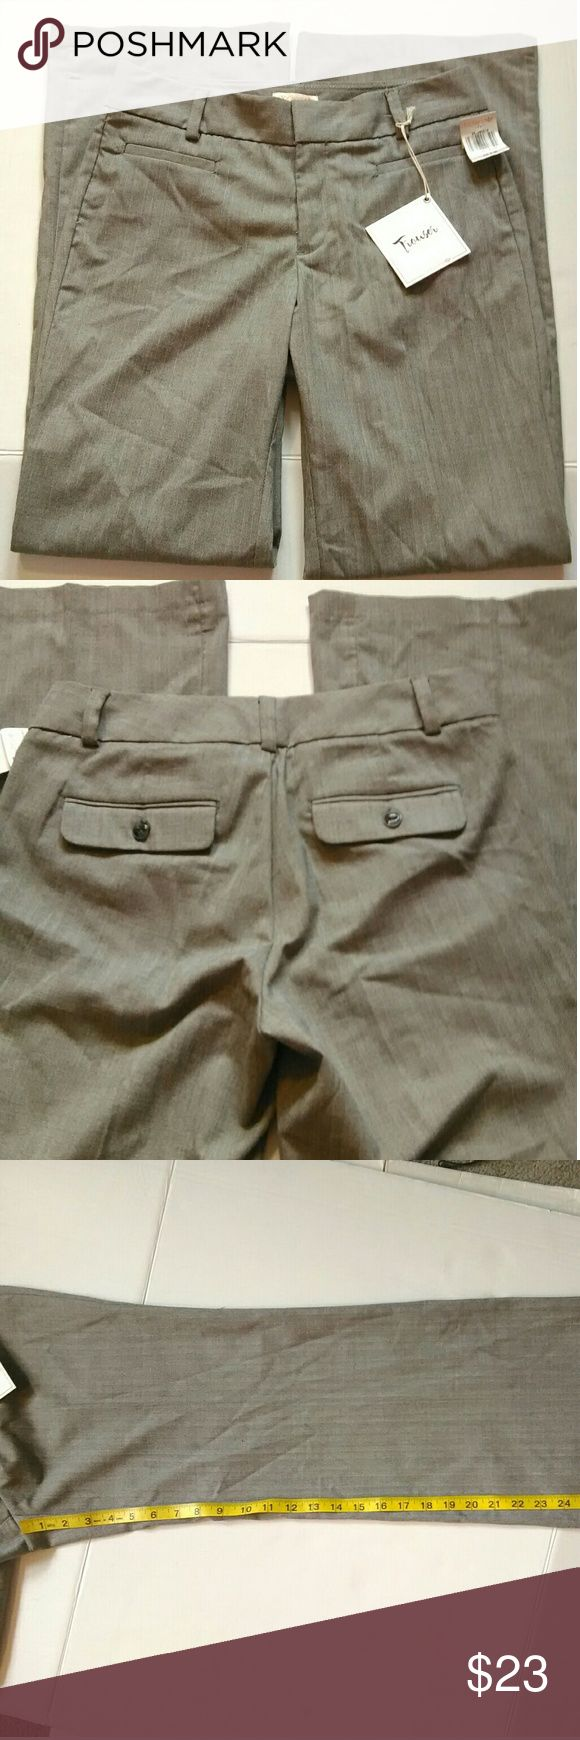 Women's Dockers gray trousers career work pants Size 6m,  metal clasp, button,  front pockets, fabric piling at bottom hem of pants Dockers Pants Trousers